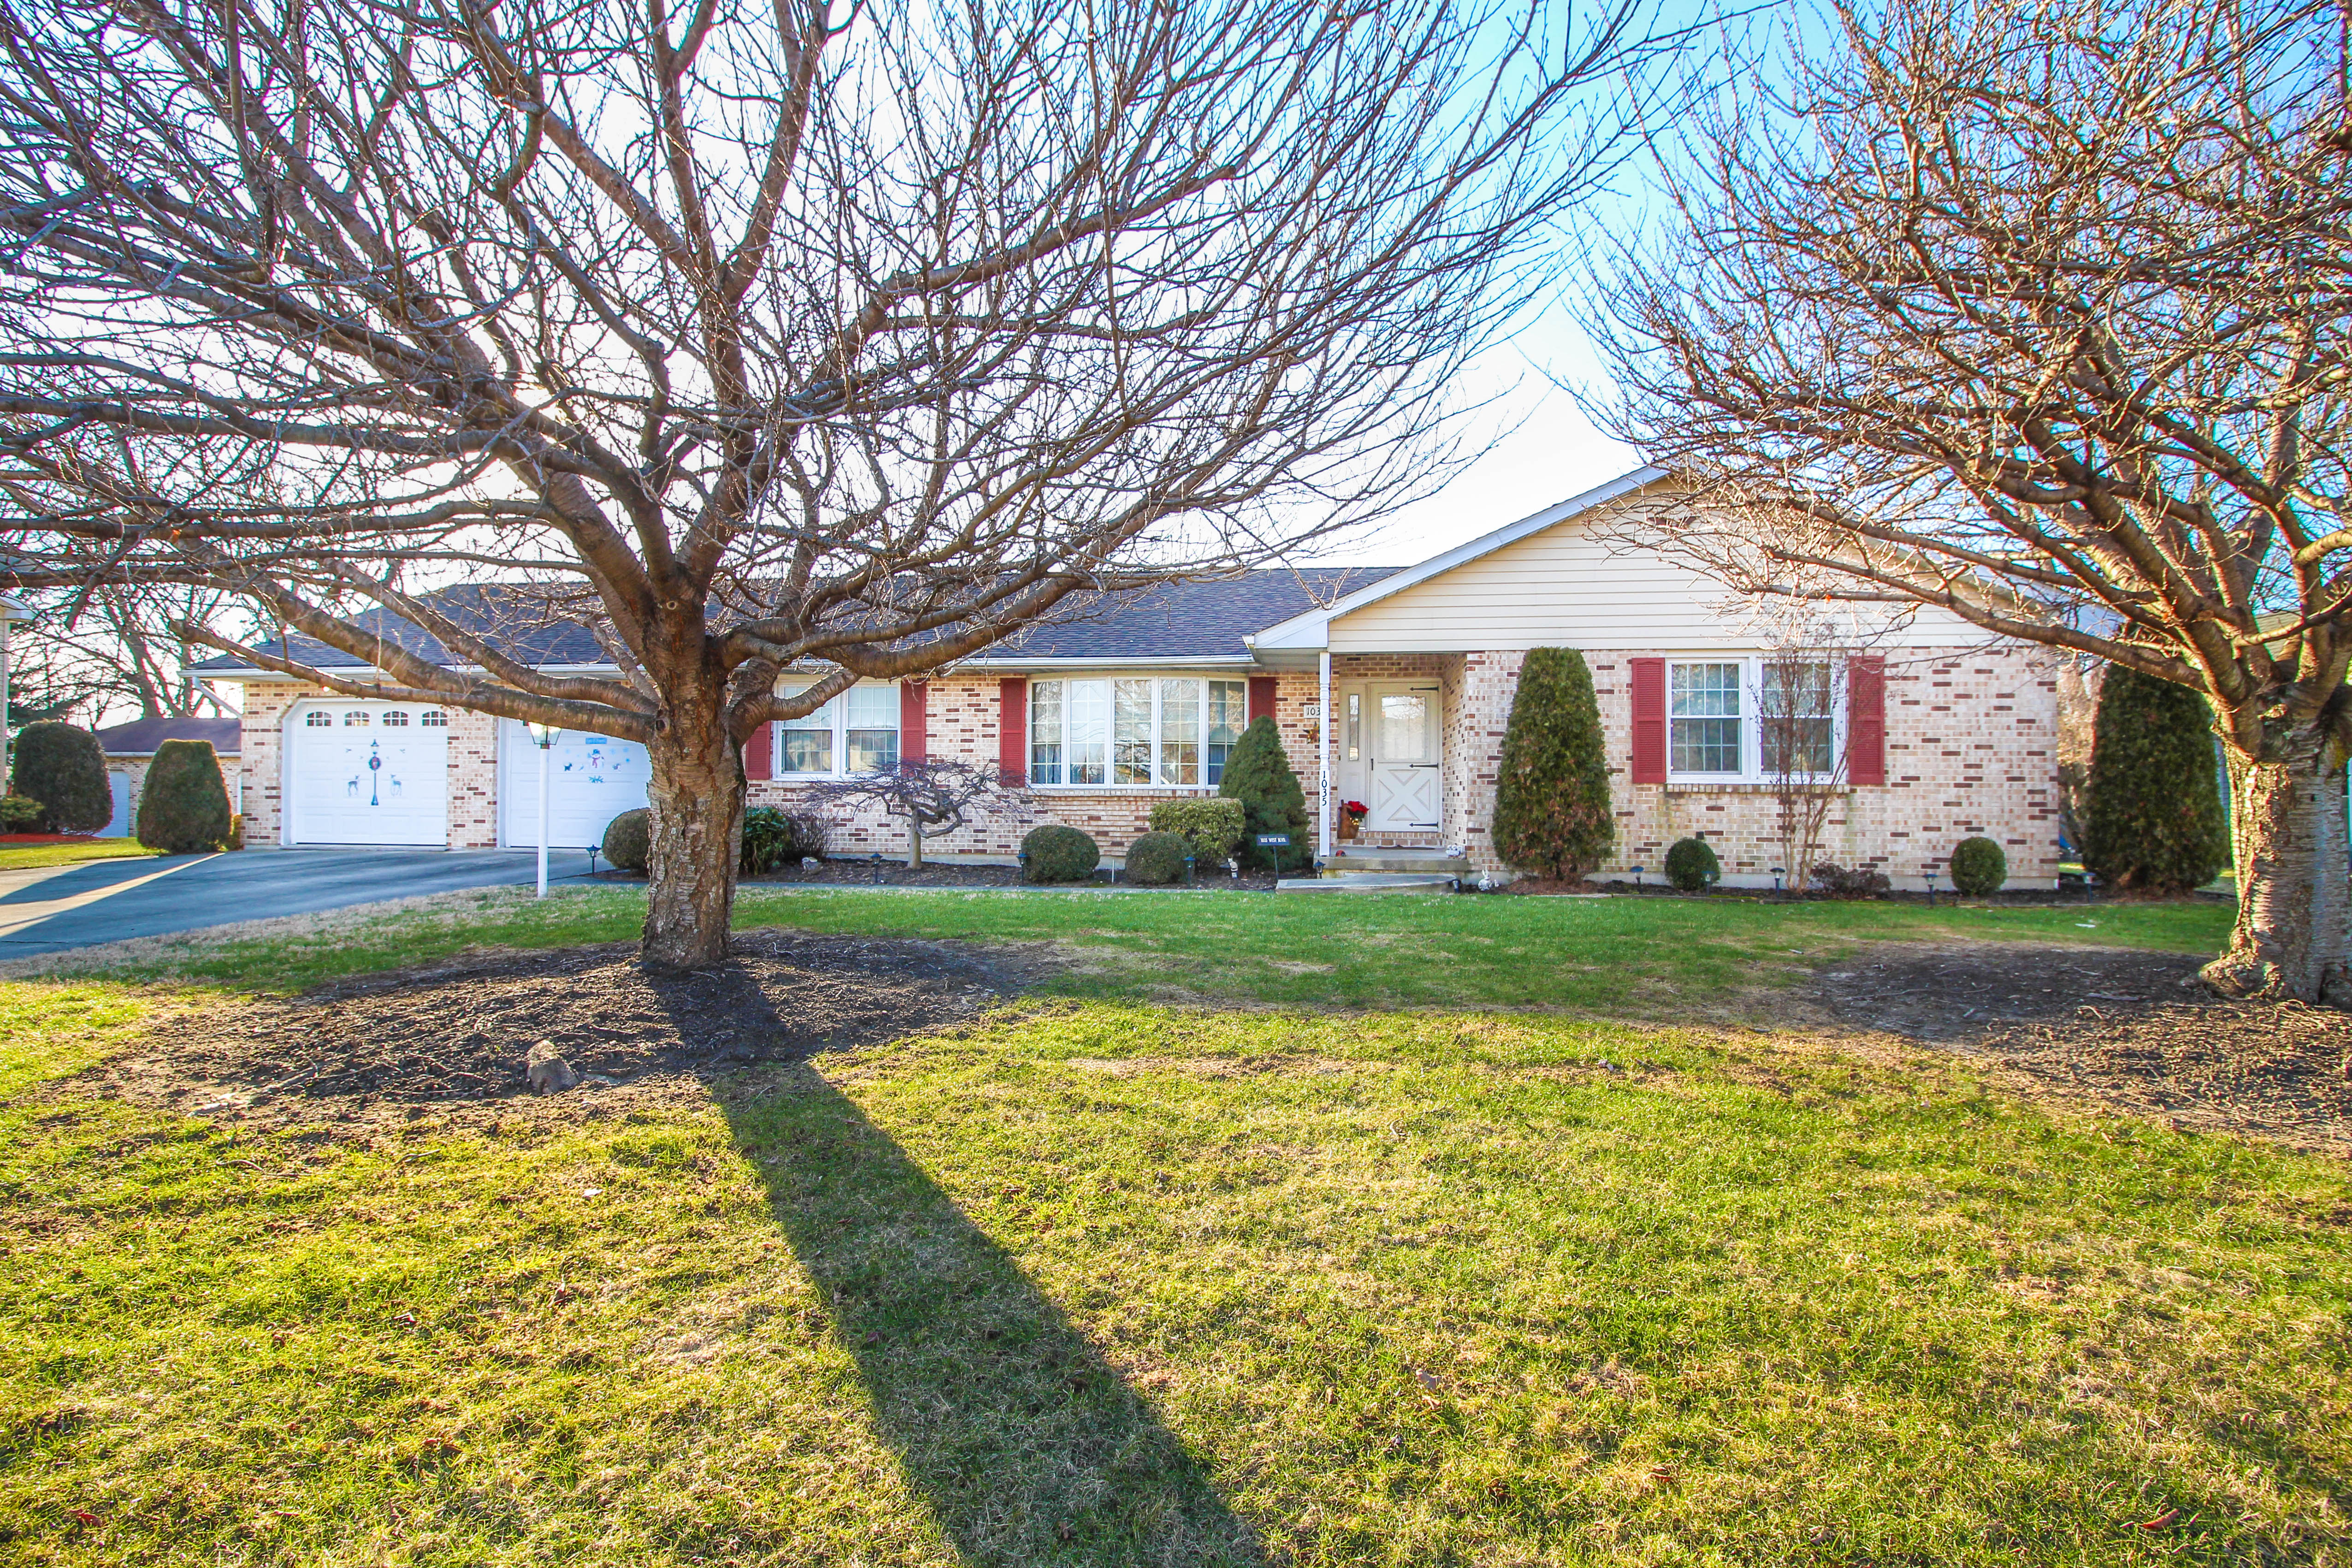 Alpha Boro Twp Home For Sale Just Listed!